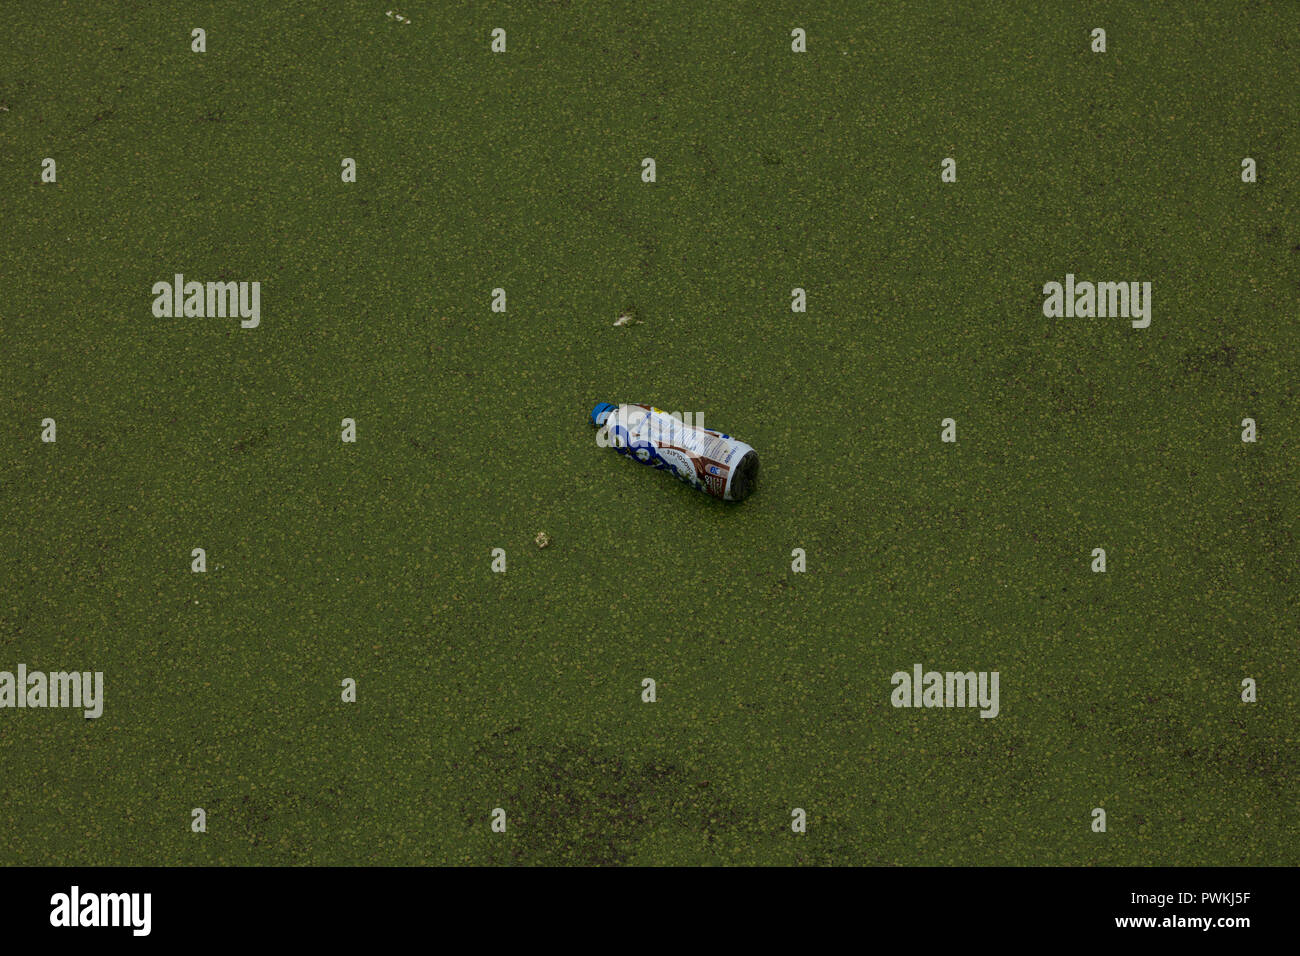 Plastic beverage bottle floats in the water of Limehouse Basin, London, UK, increasing pollution of canals, rivers and seas, needing urgent solutions. - Stock Image